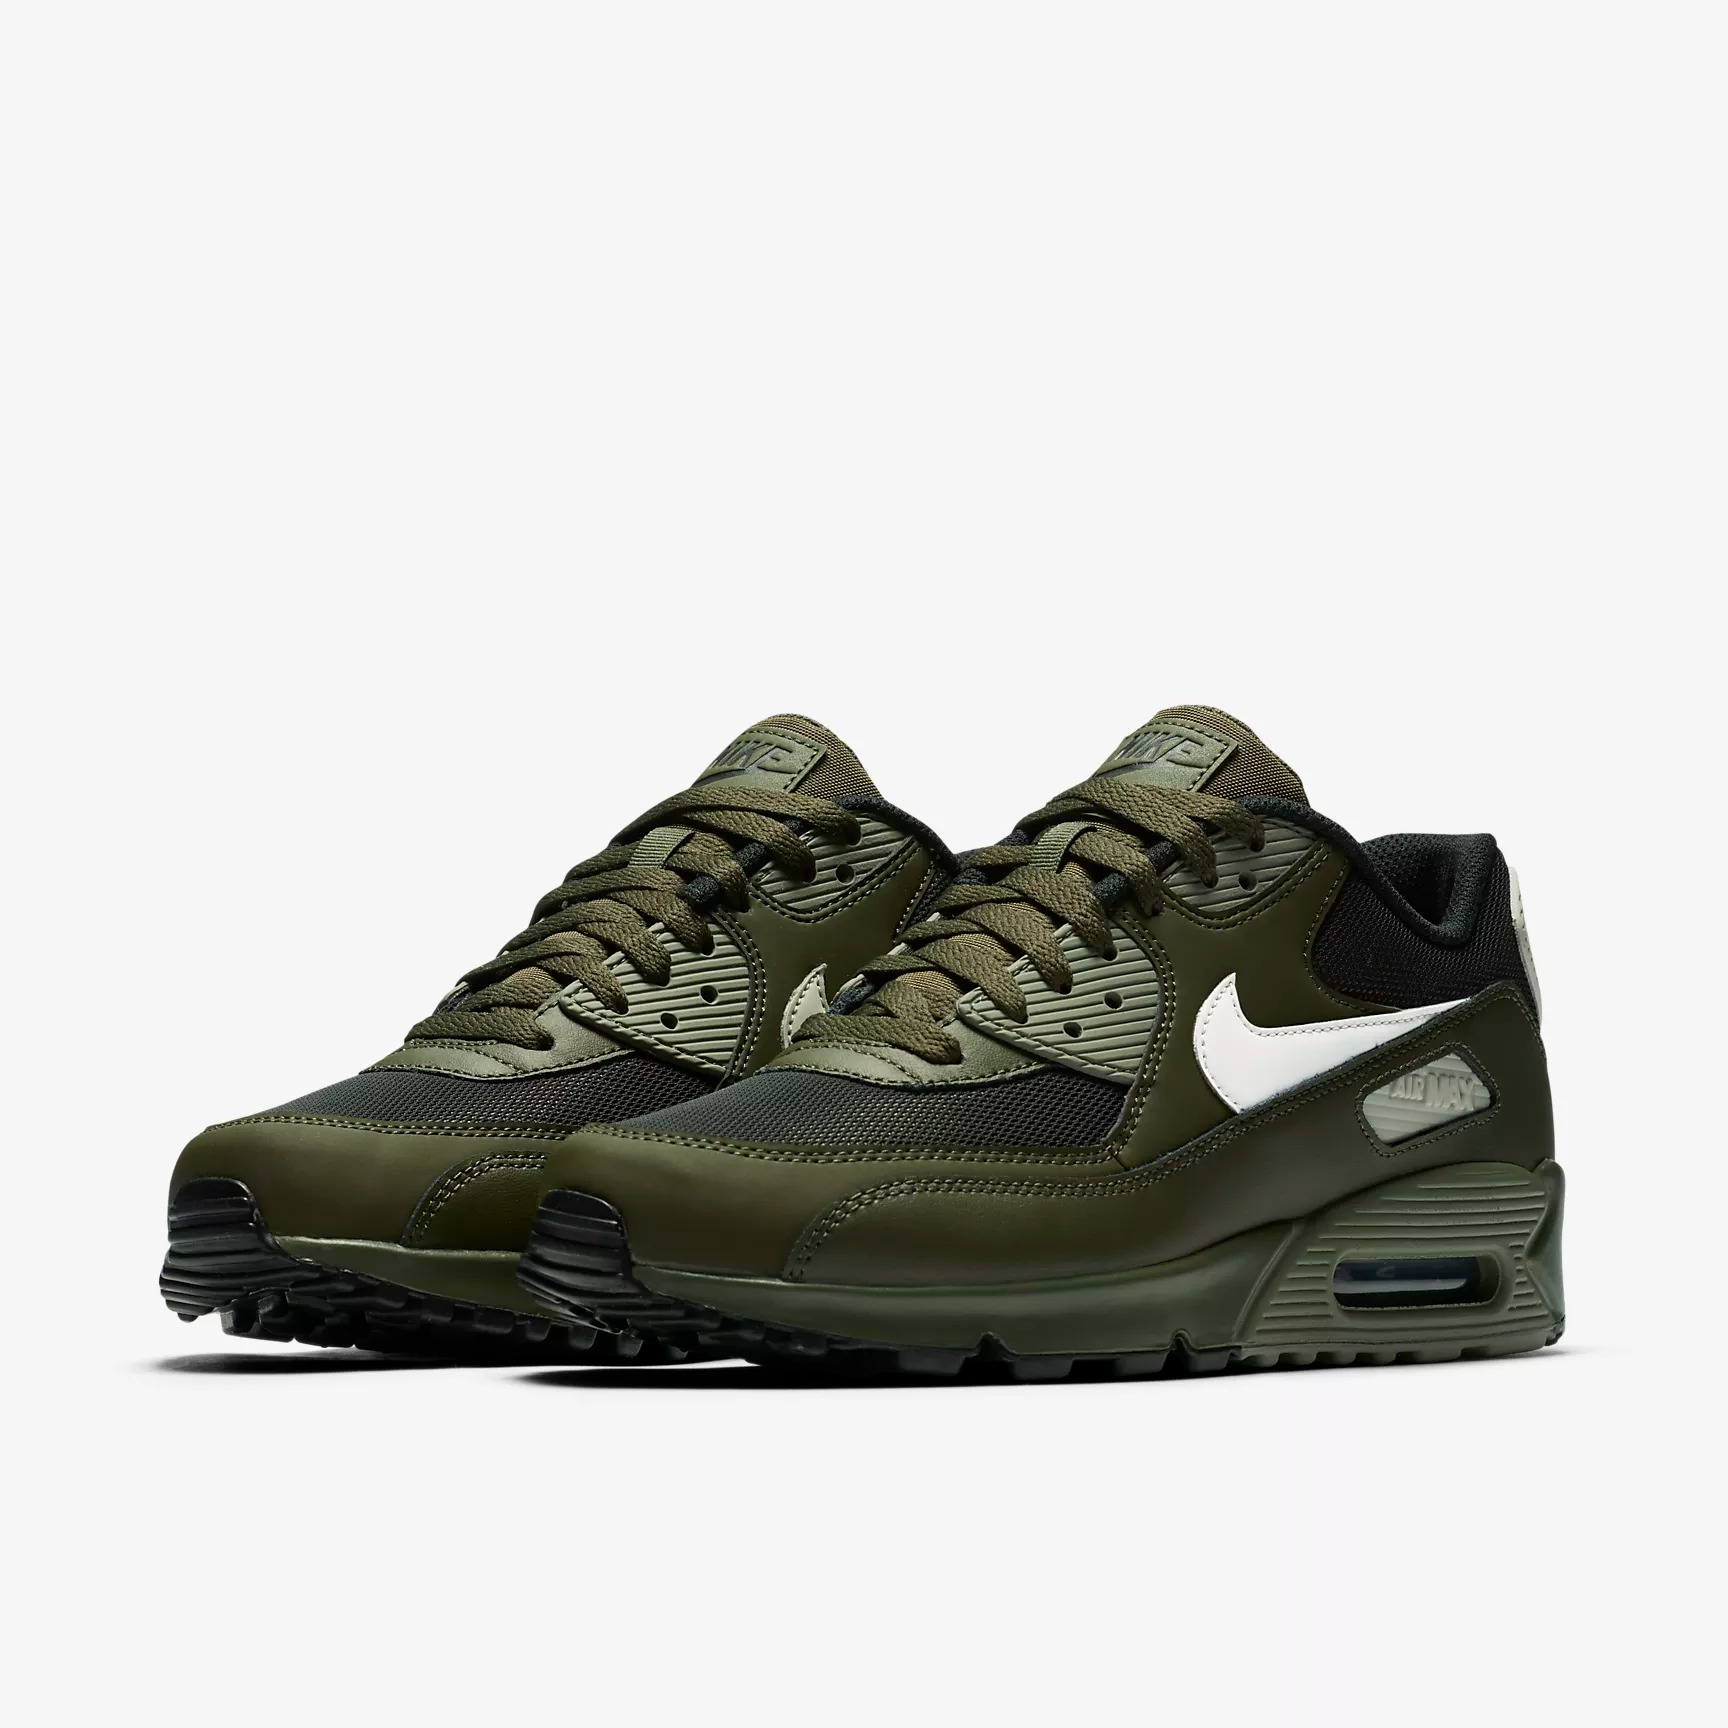 Nike Air Max 90 Essential Sneakers SPORT SHOES Athletic Shoes And